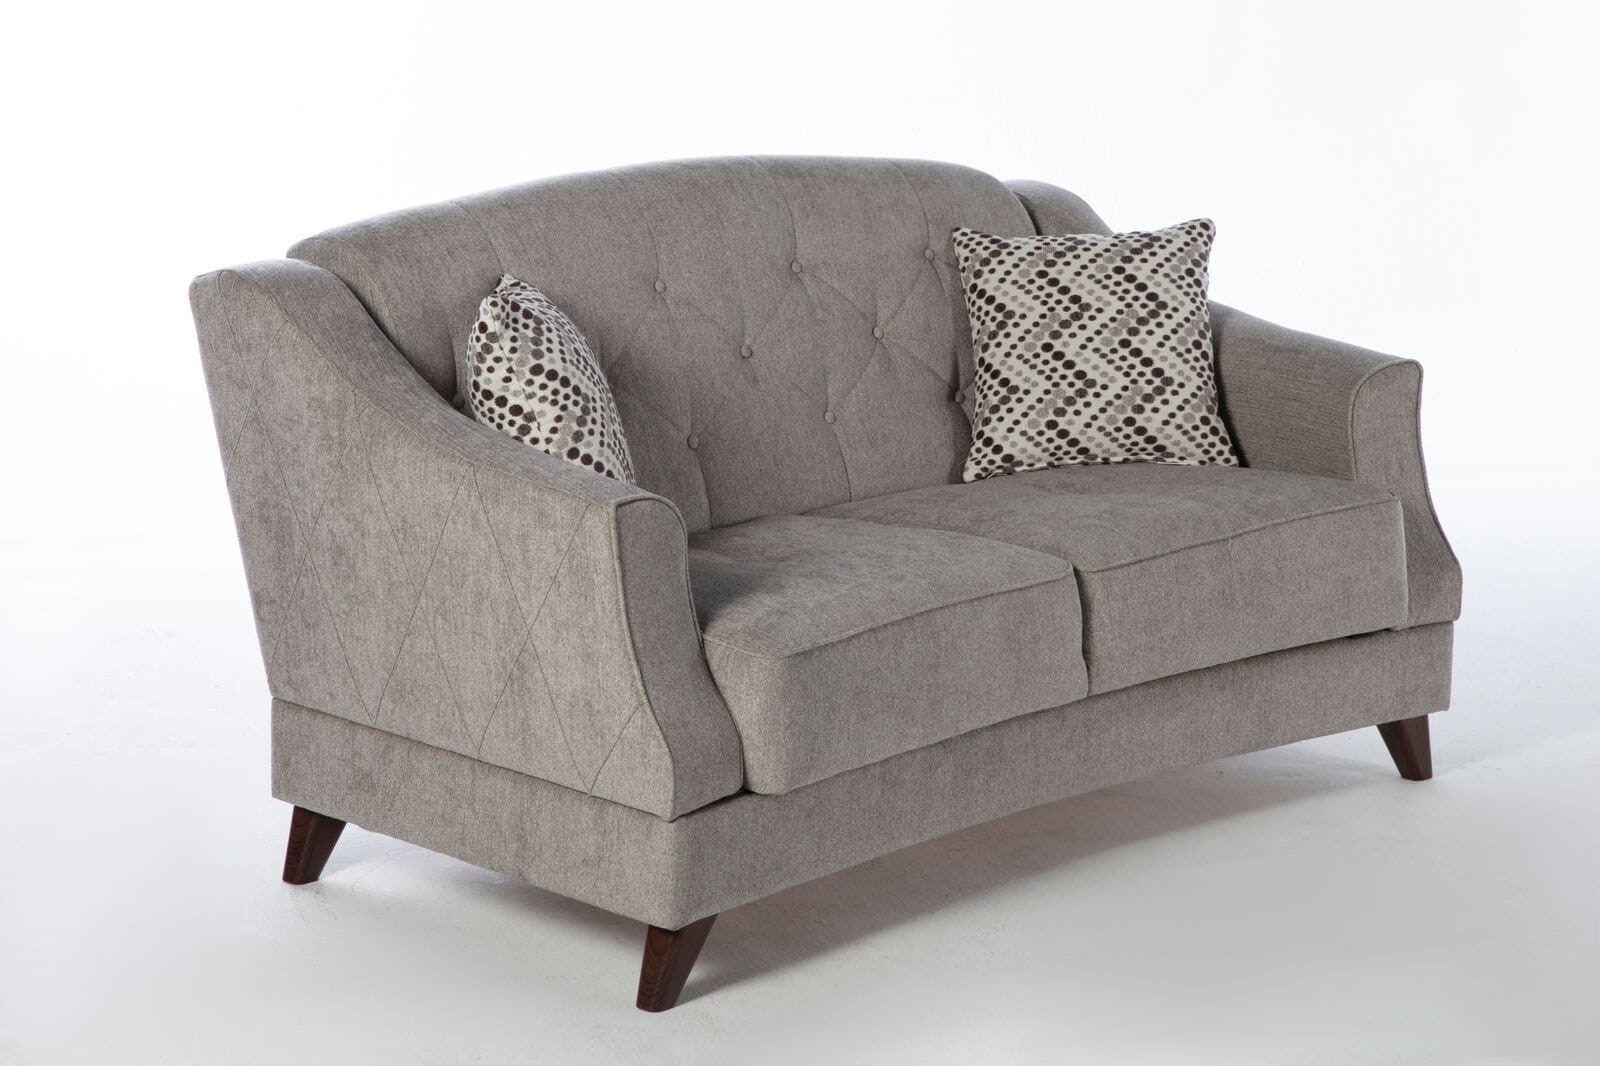 Strange Siena Valencia Grey Loveseat By Istikbal Furniture Gmtry Best Dining Table And Chair Ideas Images Gmtryco